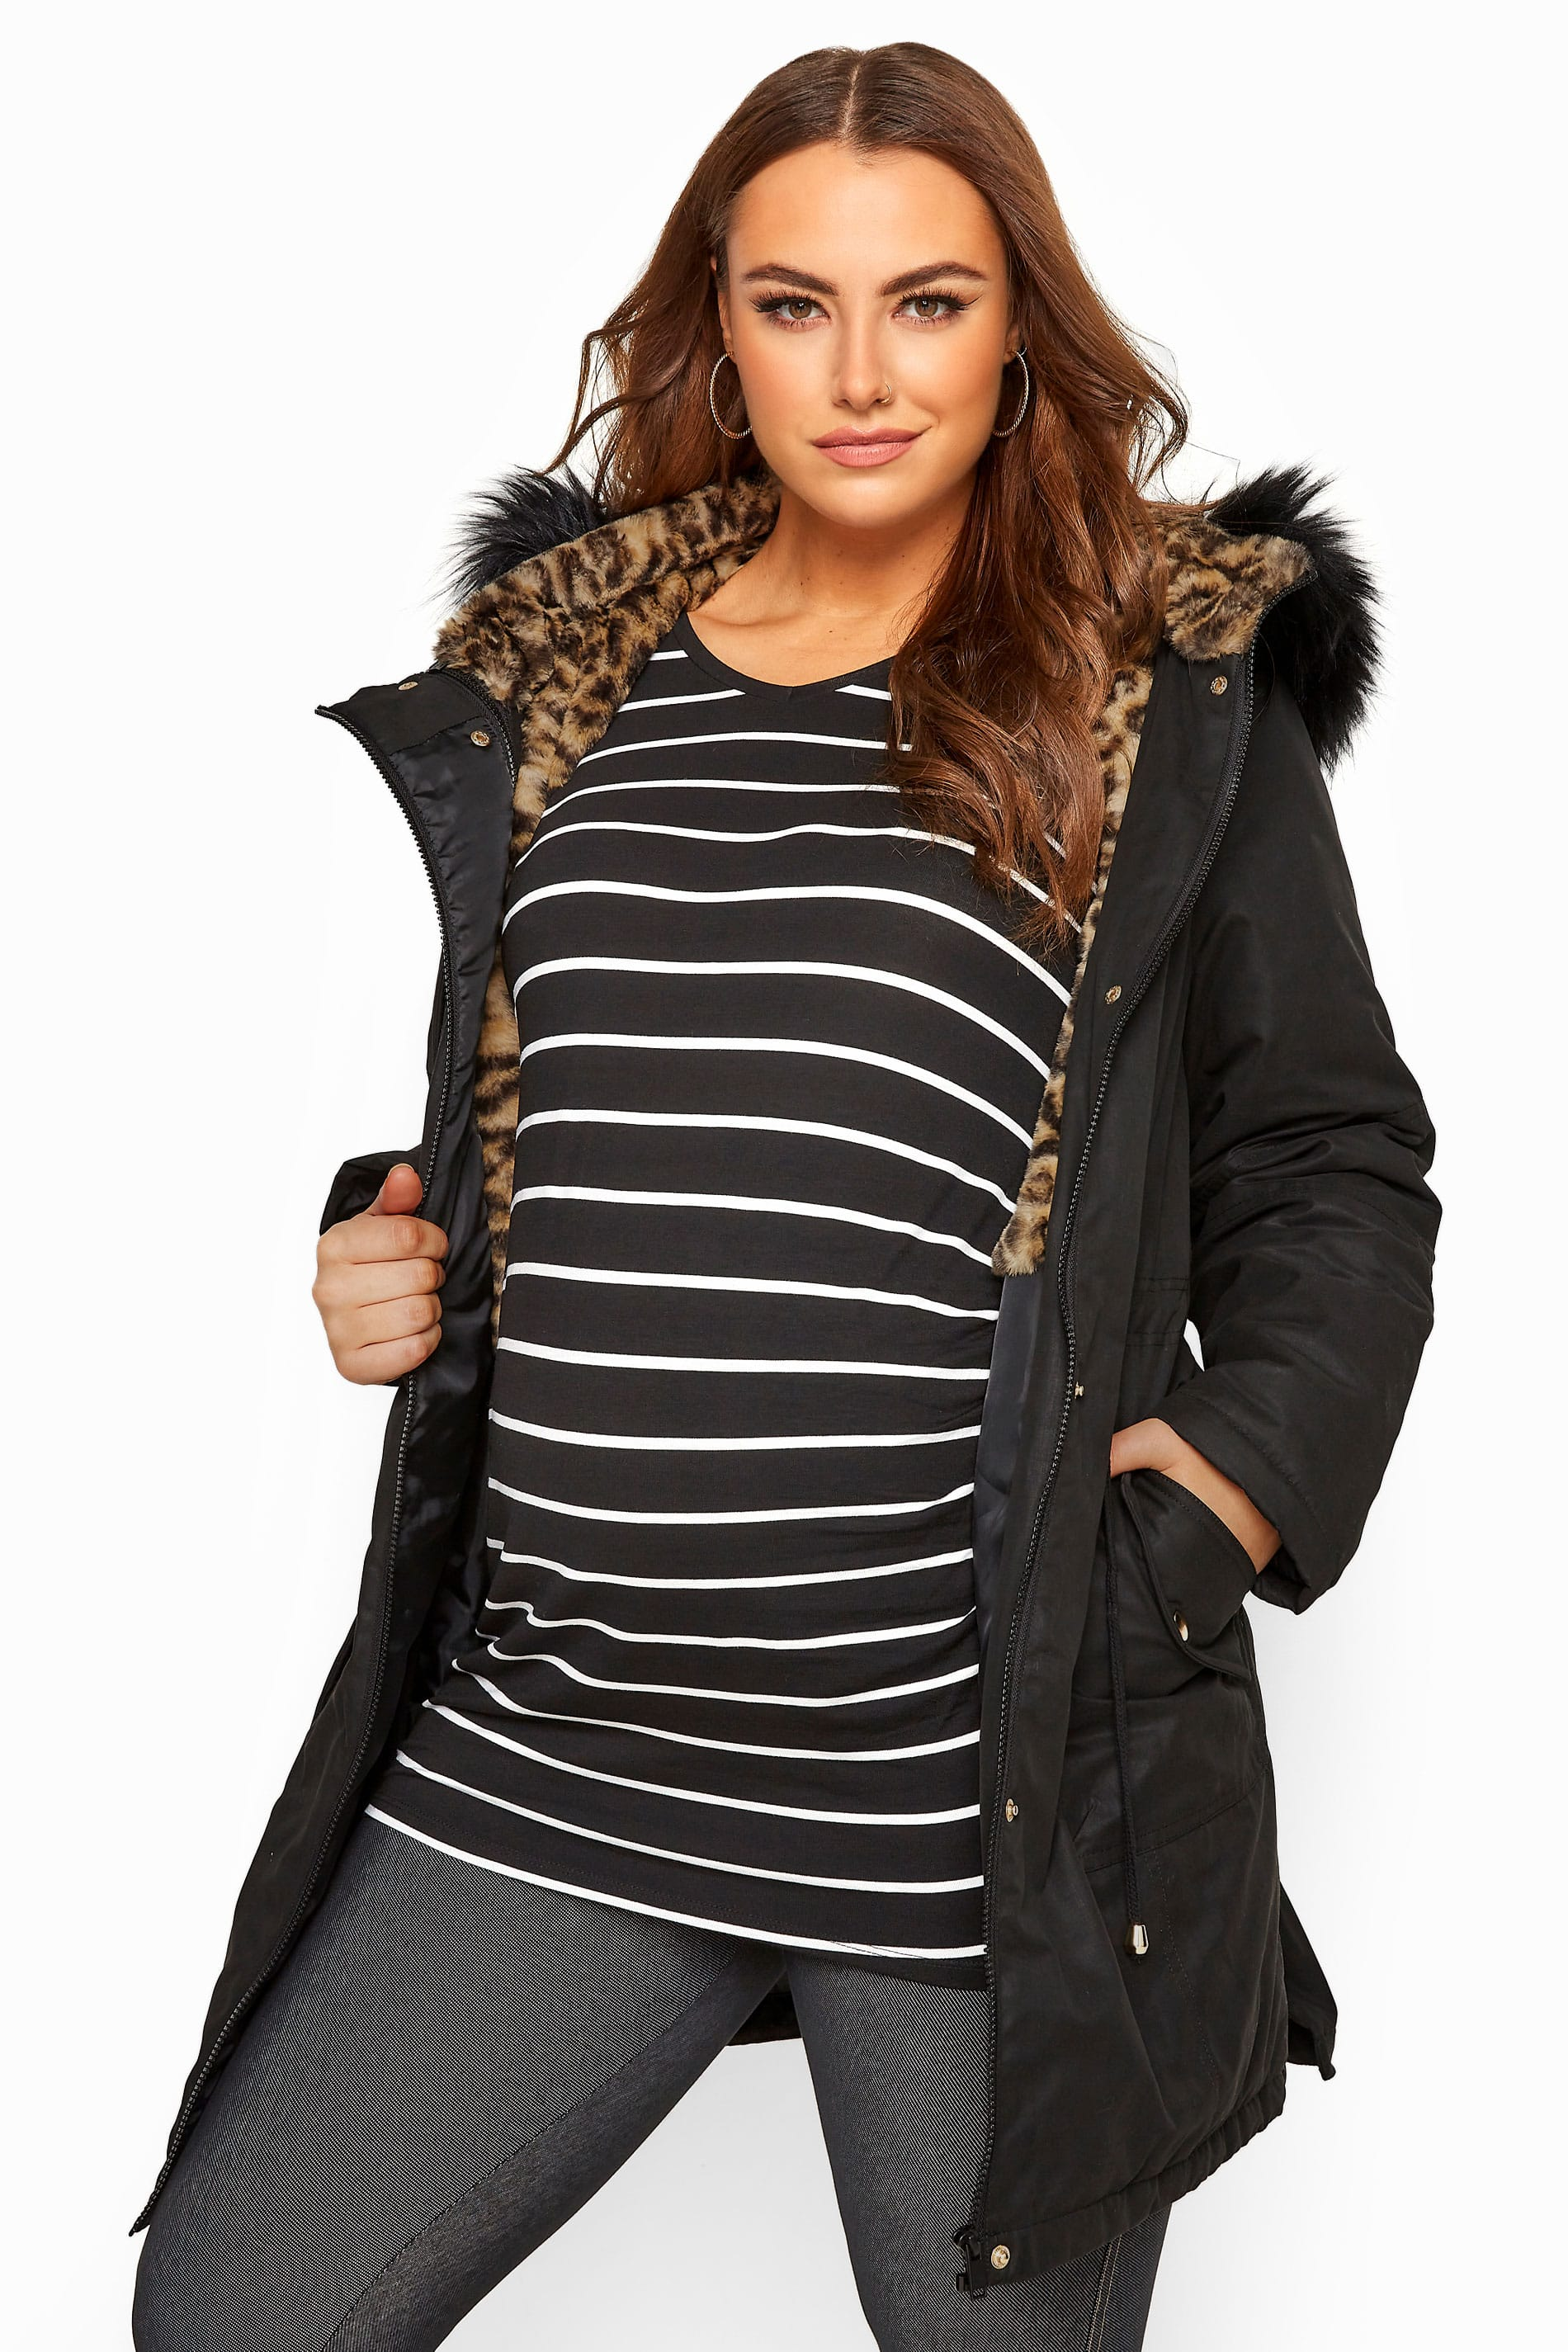 BUMP IT UP MATERNITY Black Animal Print Faux Fur Parka Coat